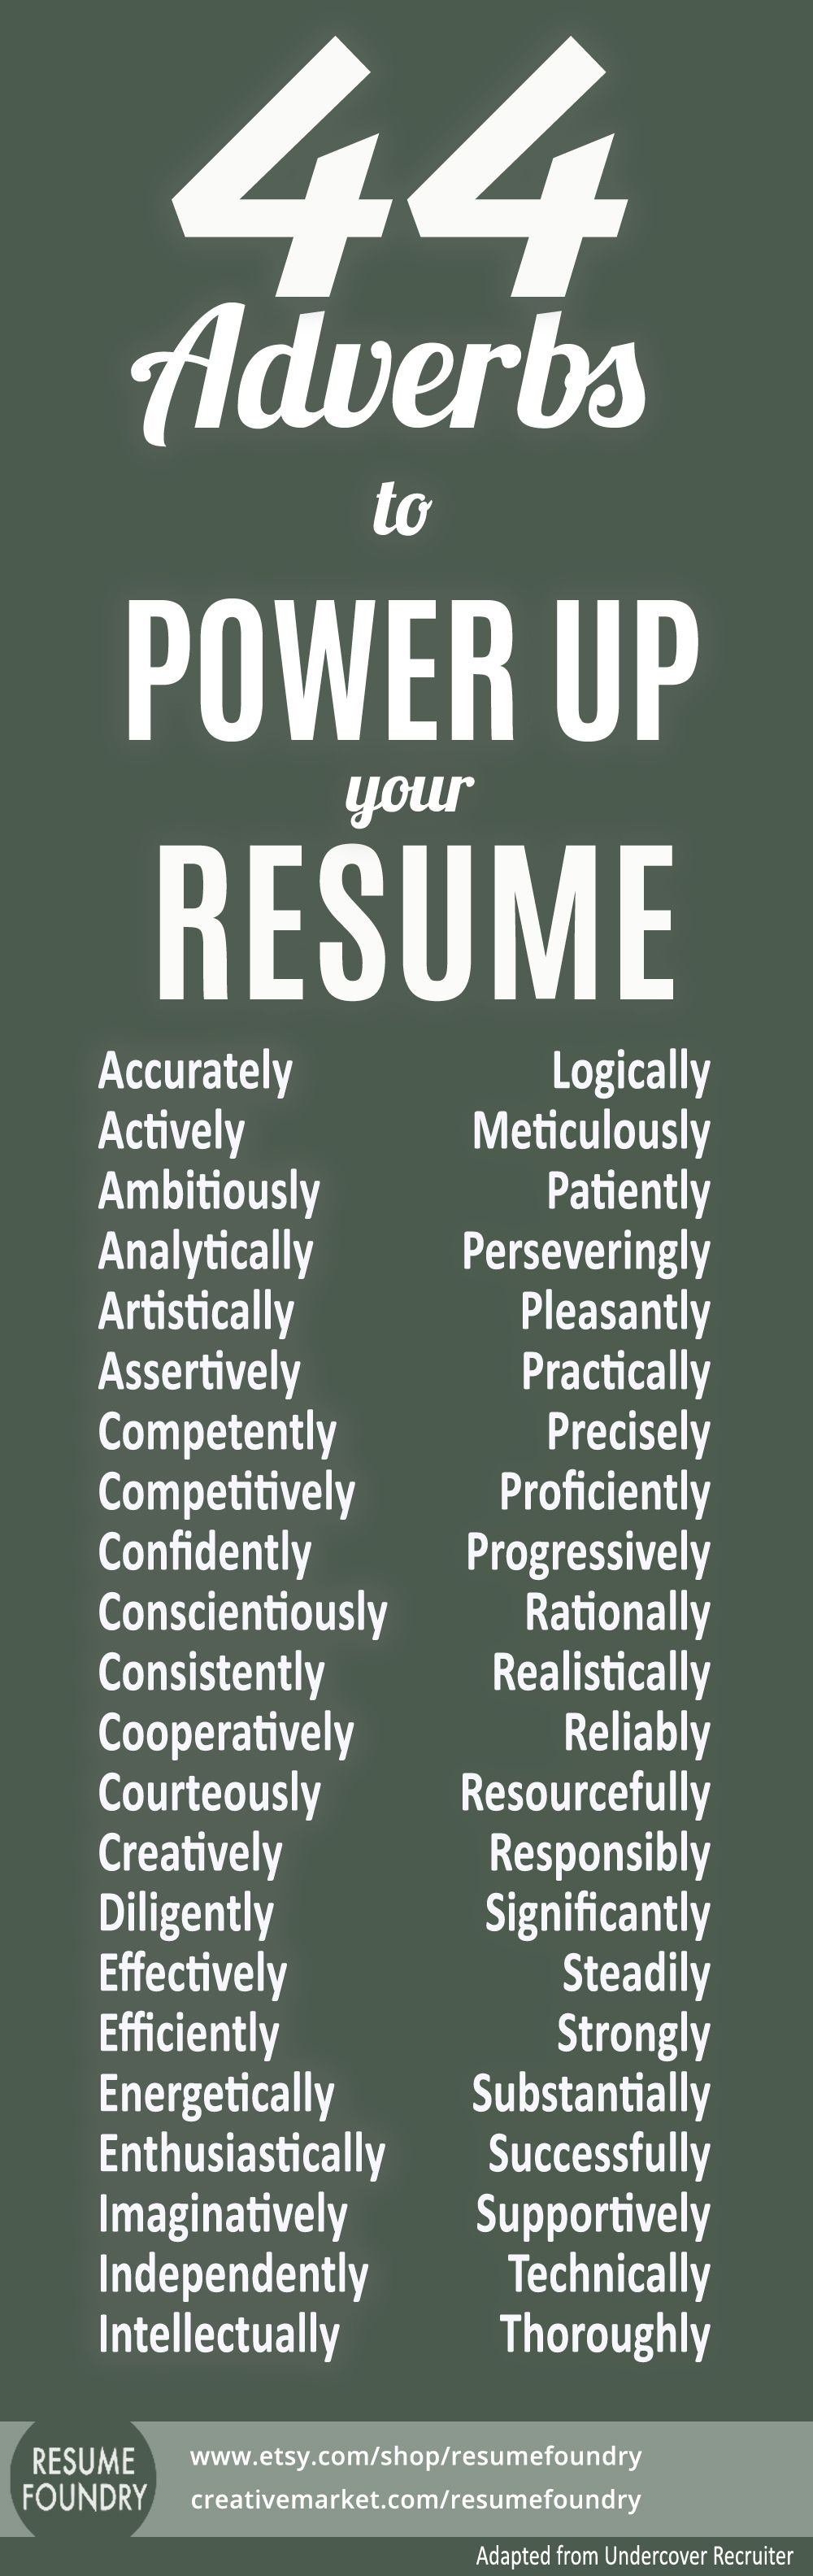 Good Qualities To Put On A Resume Good Skills For Resume Template Pinterest